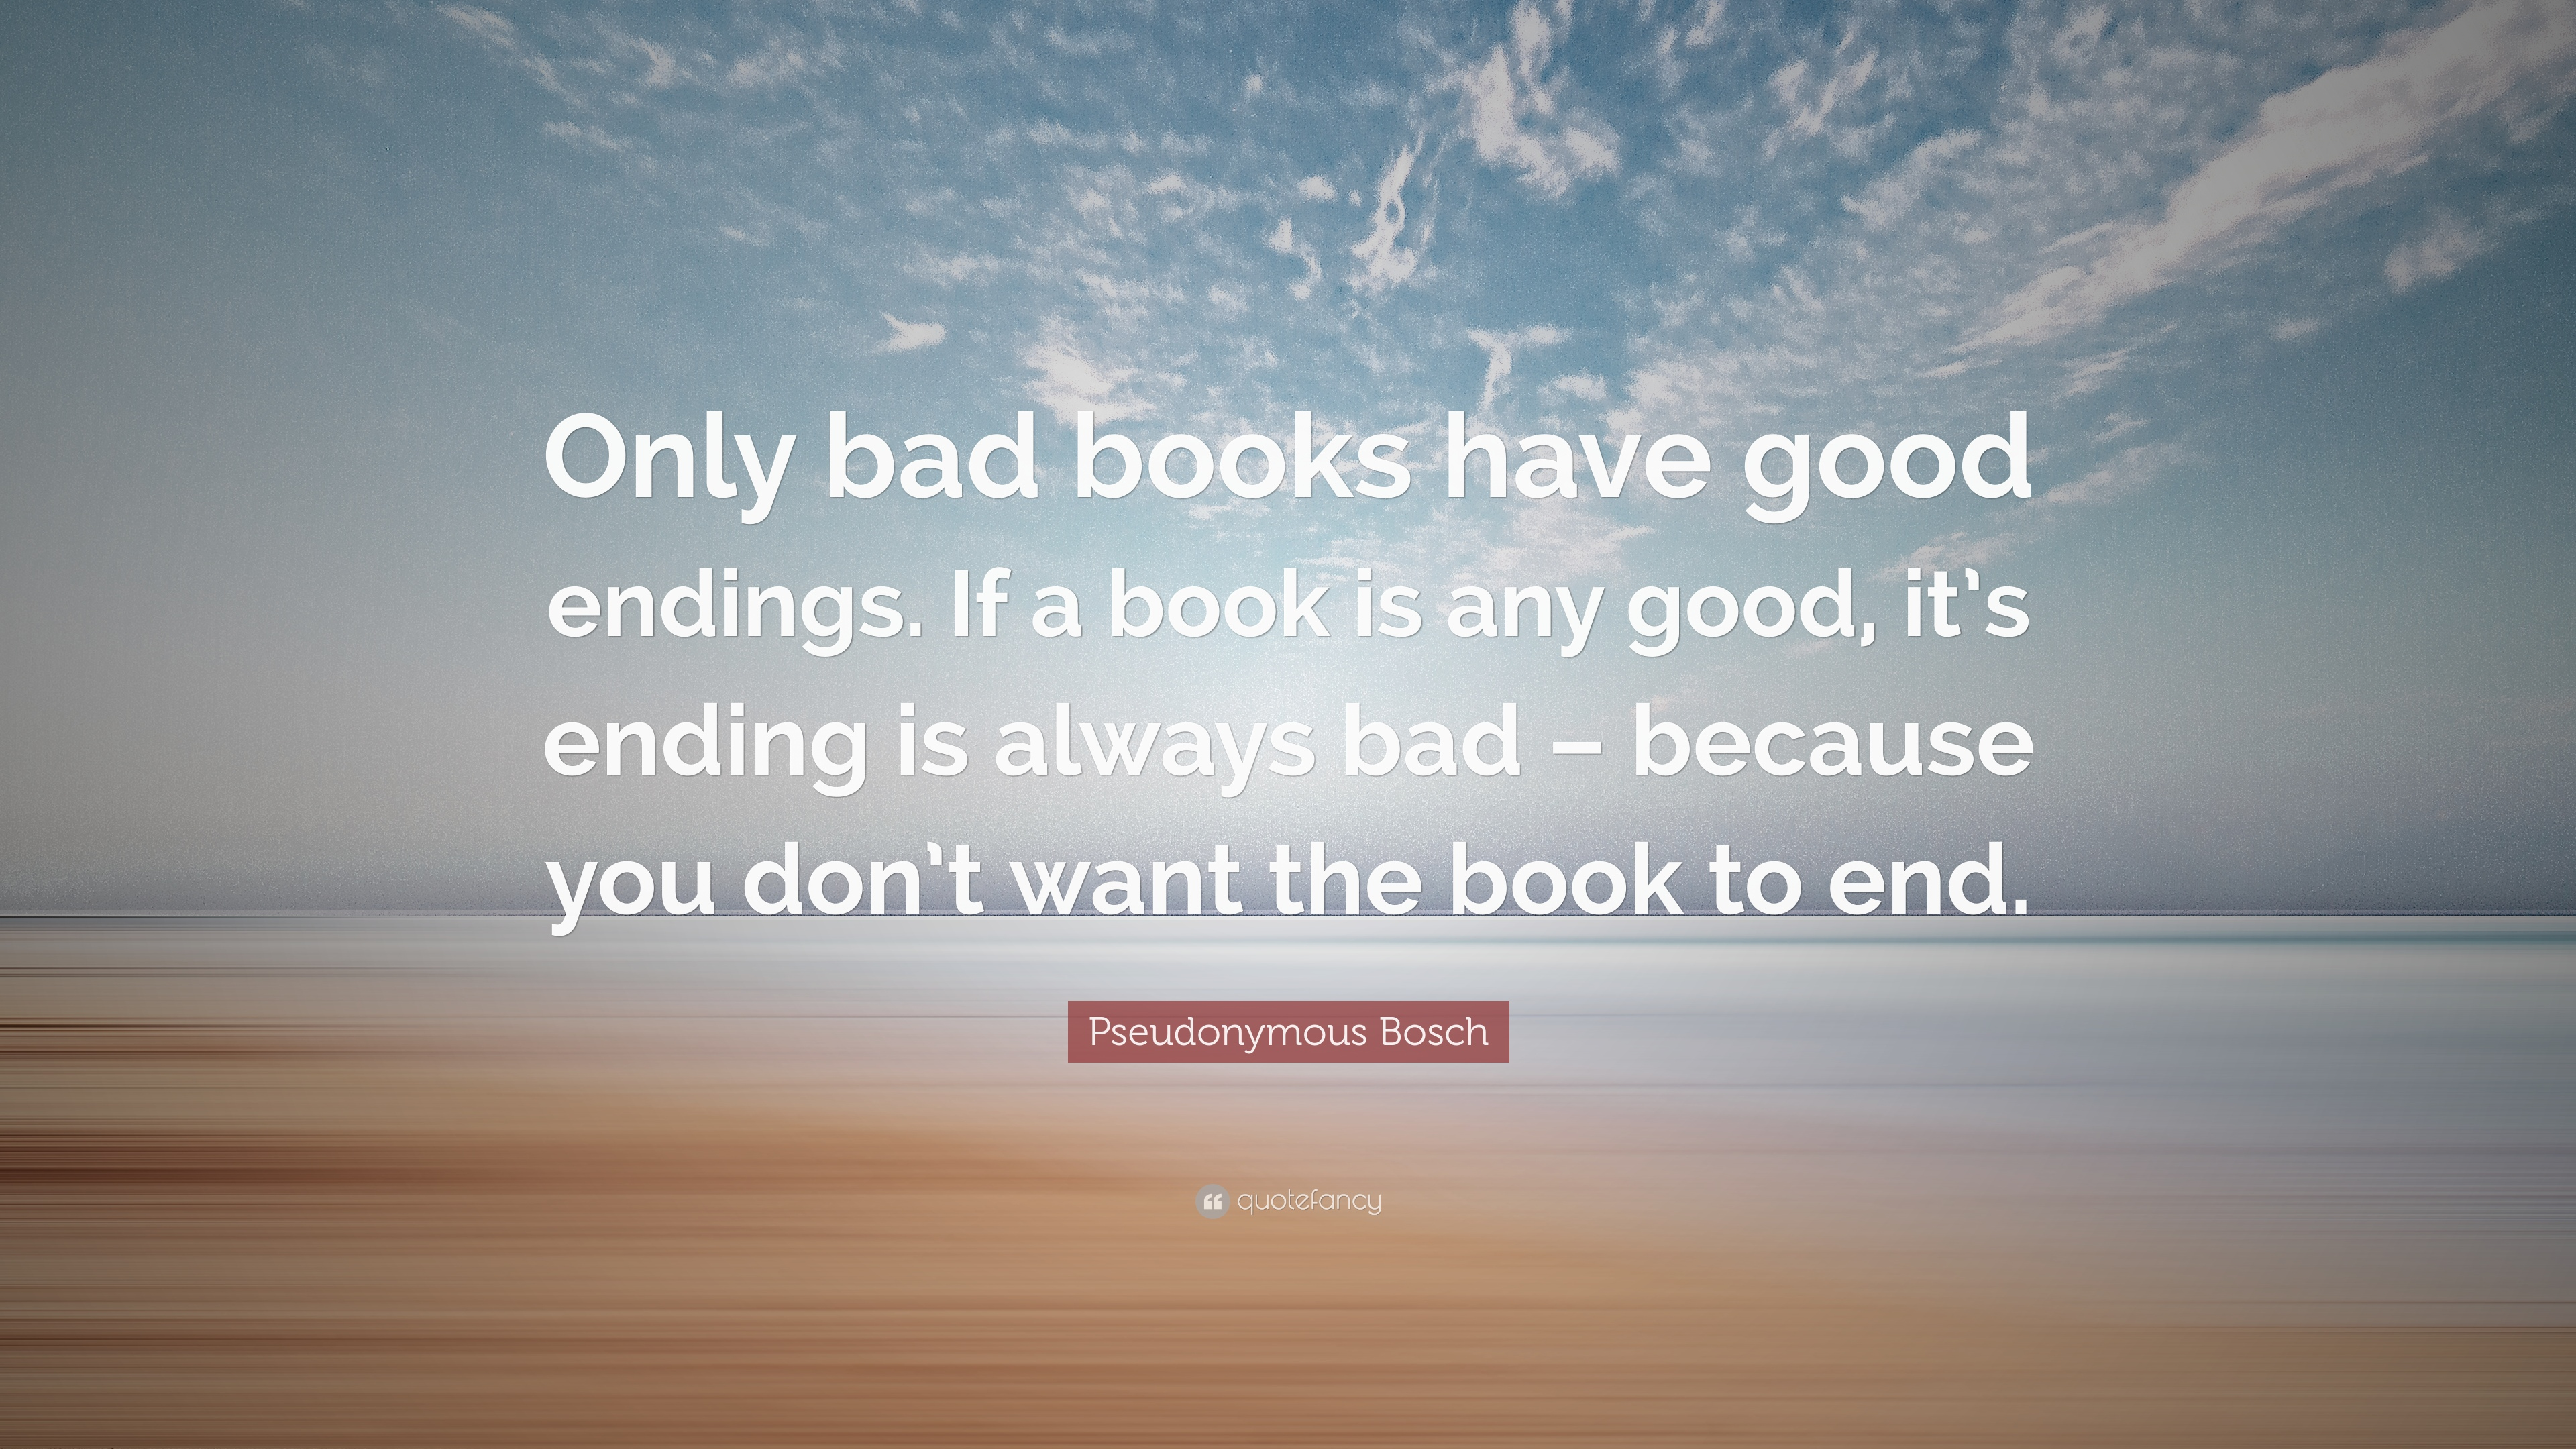 Pseudonymous Bosch Quotes (16 wallpapers) - Quotefancy